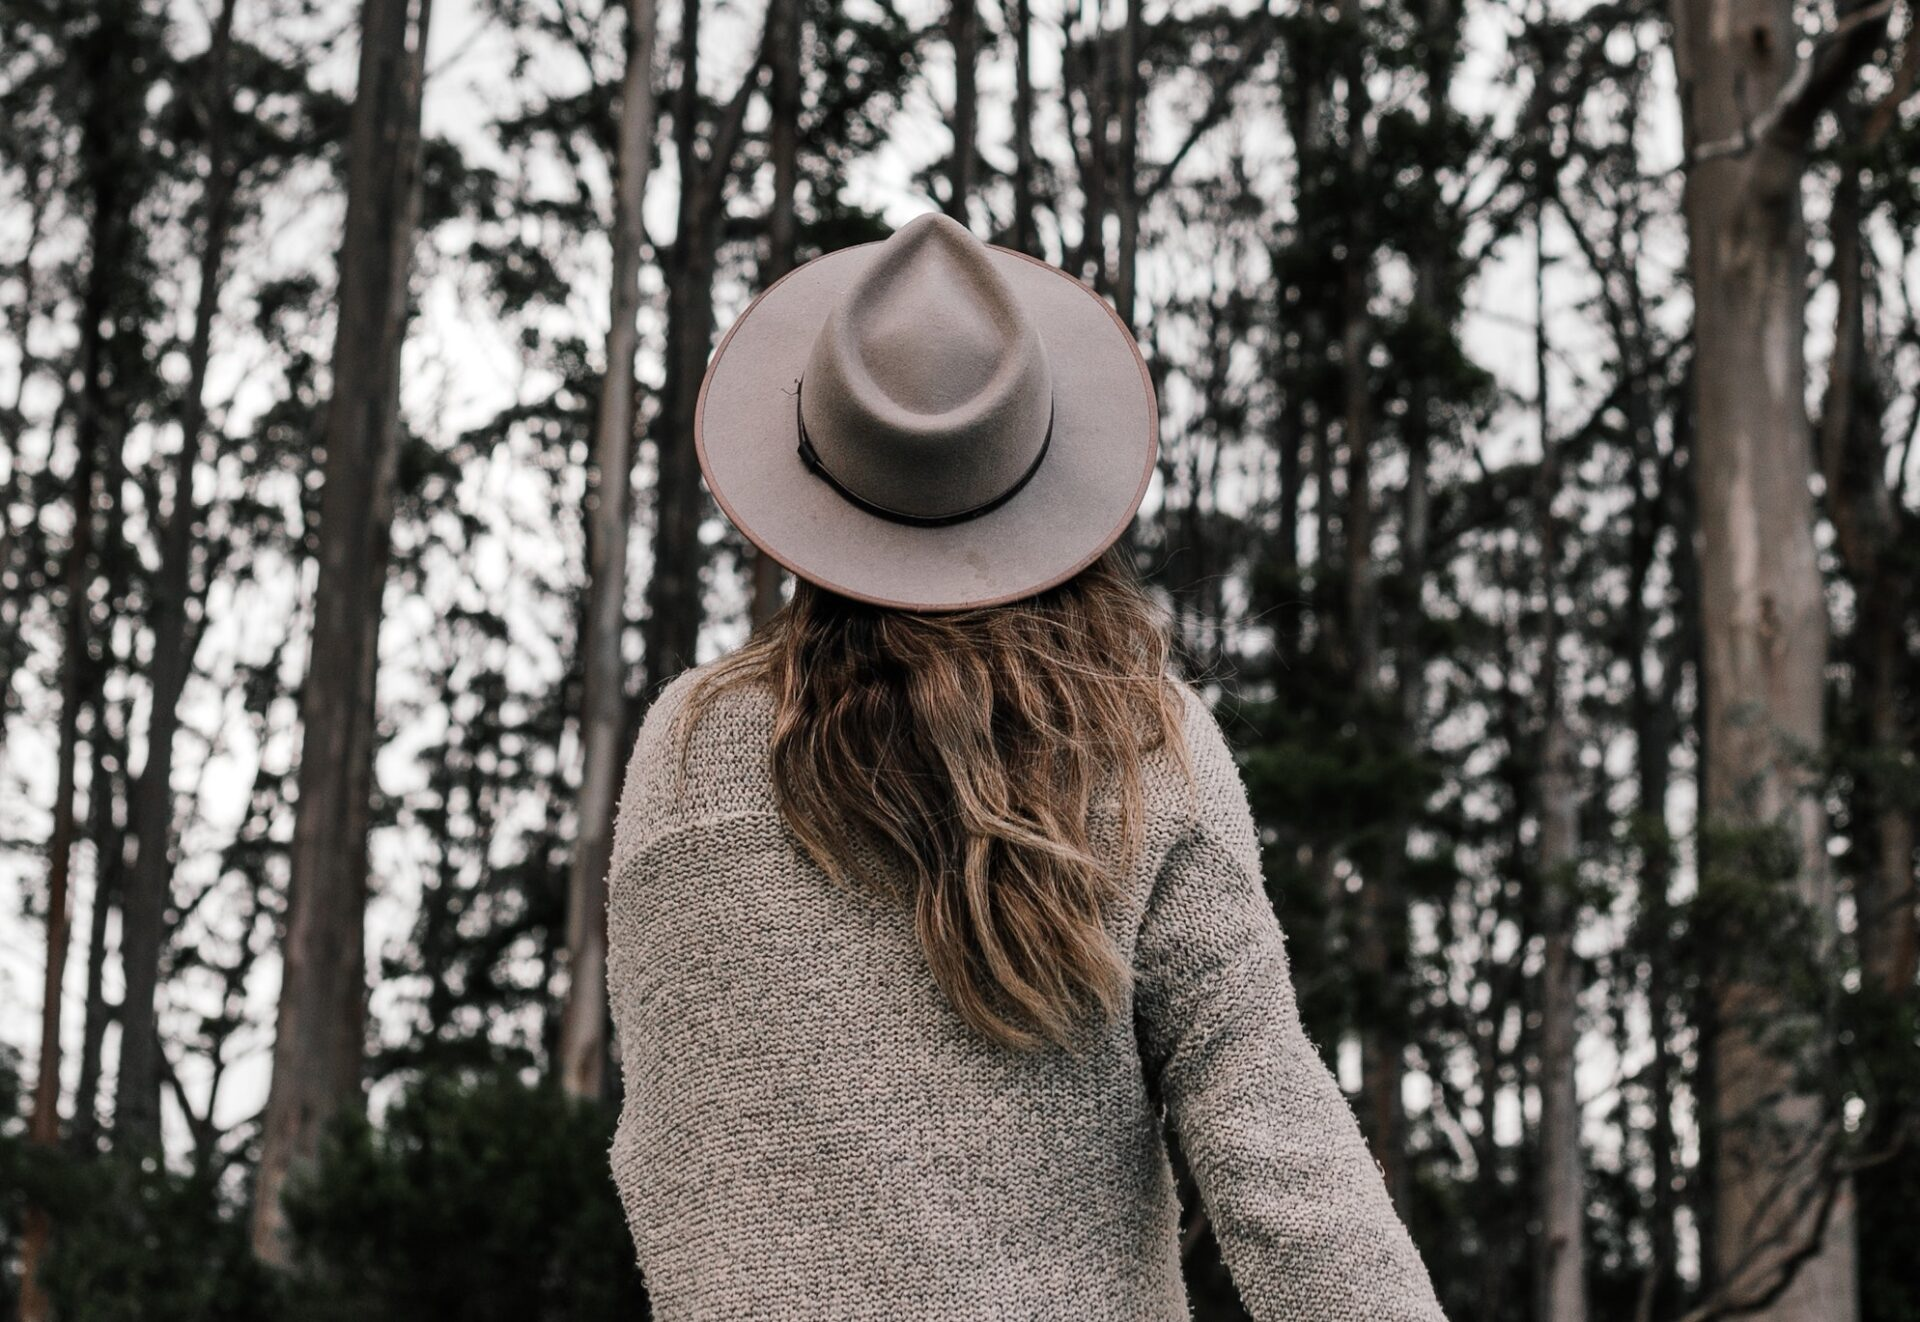 Girl with long flowing hair and a hat from the back looking and walking towards trees